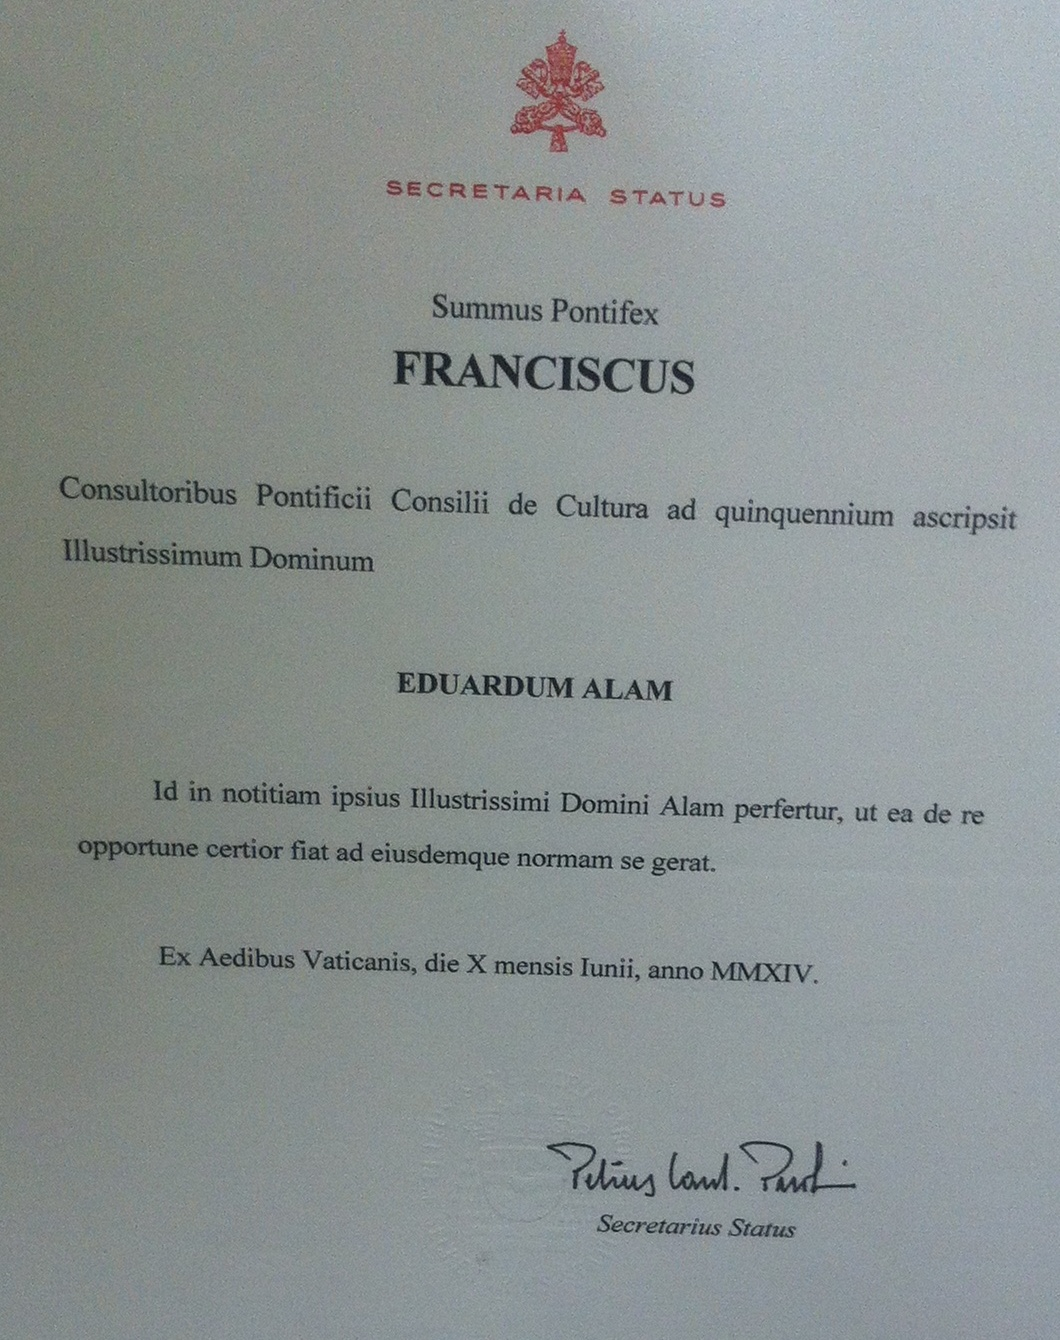 Pontifical Council for Culture - Papal Appointment of Edward Alam (2)